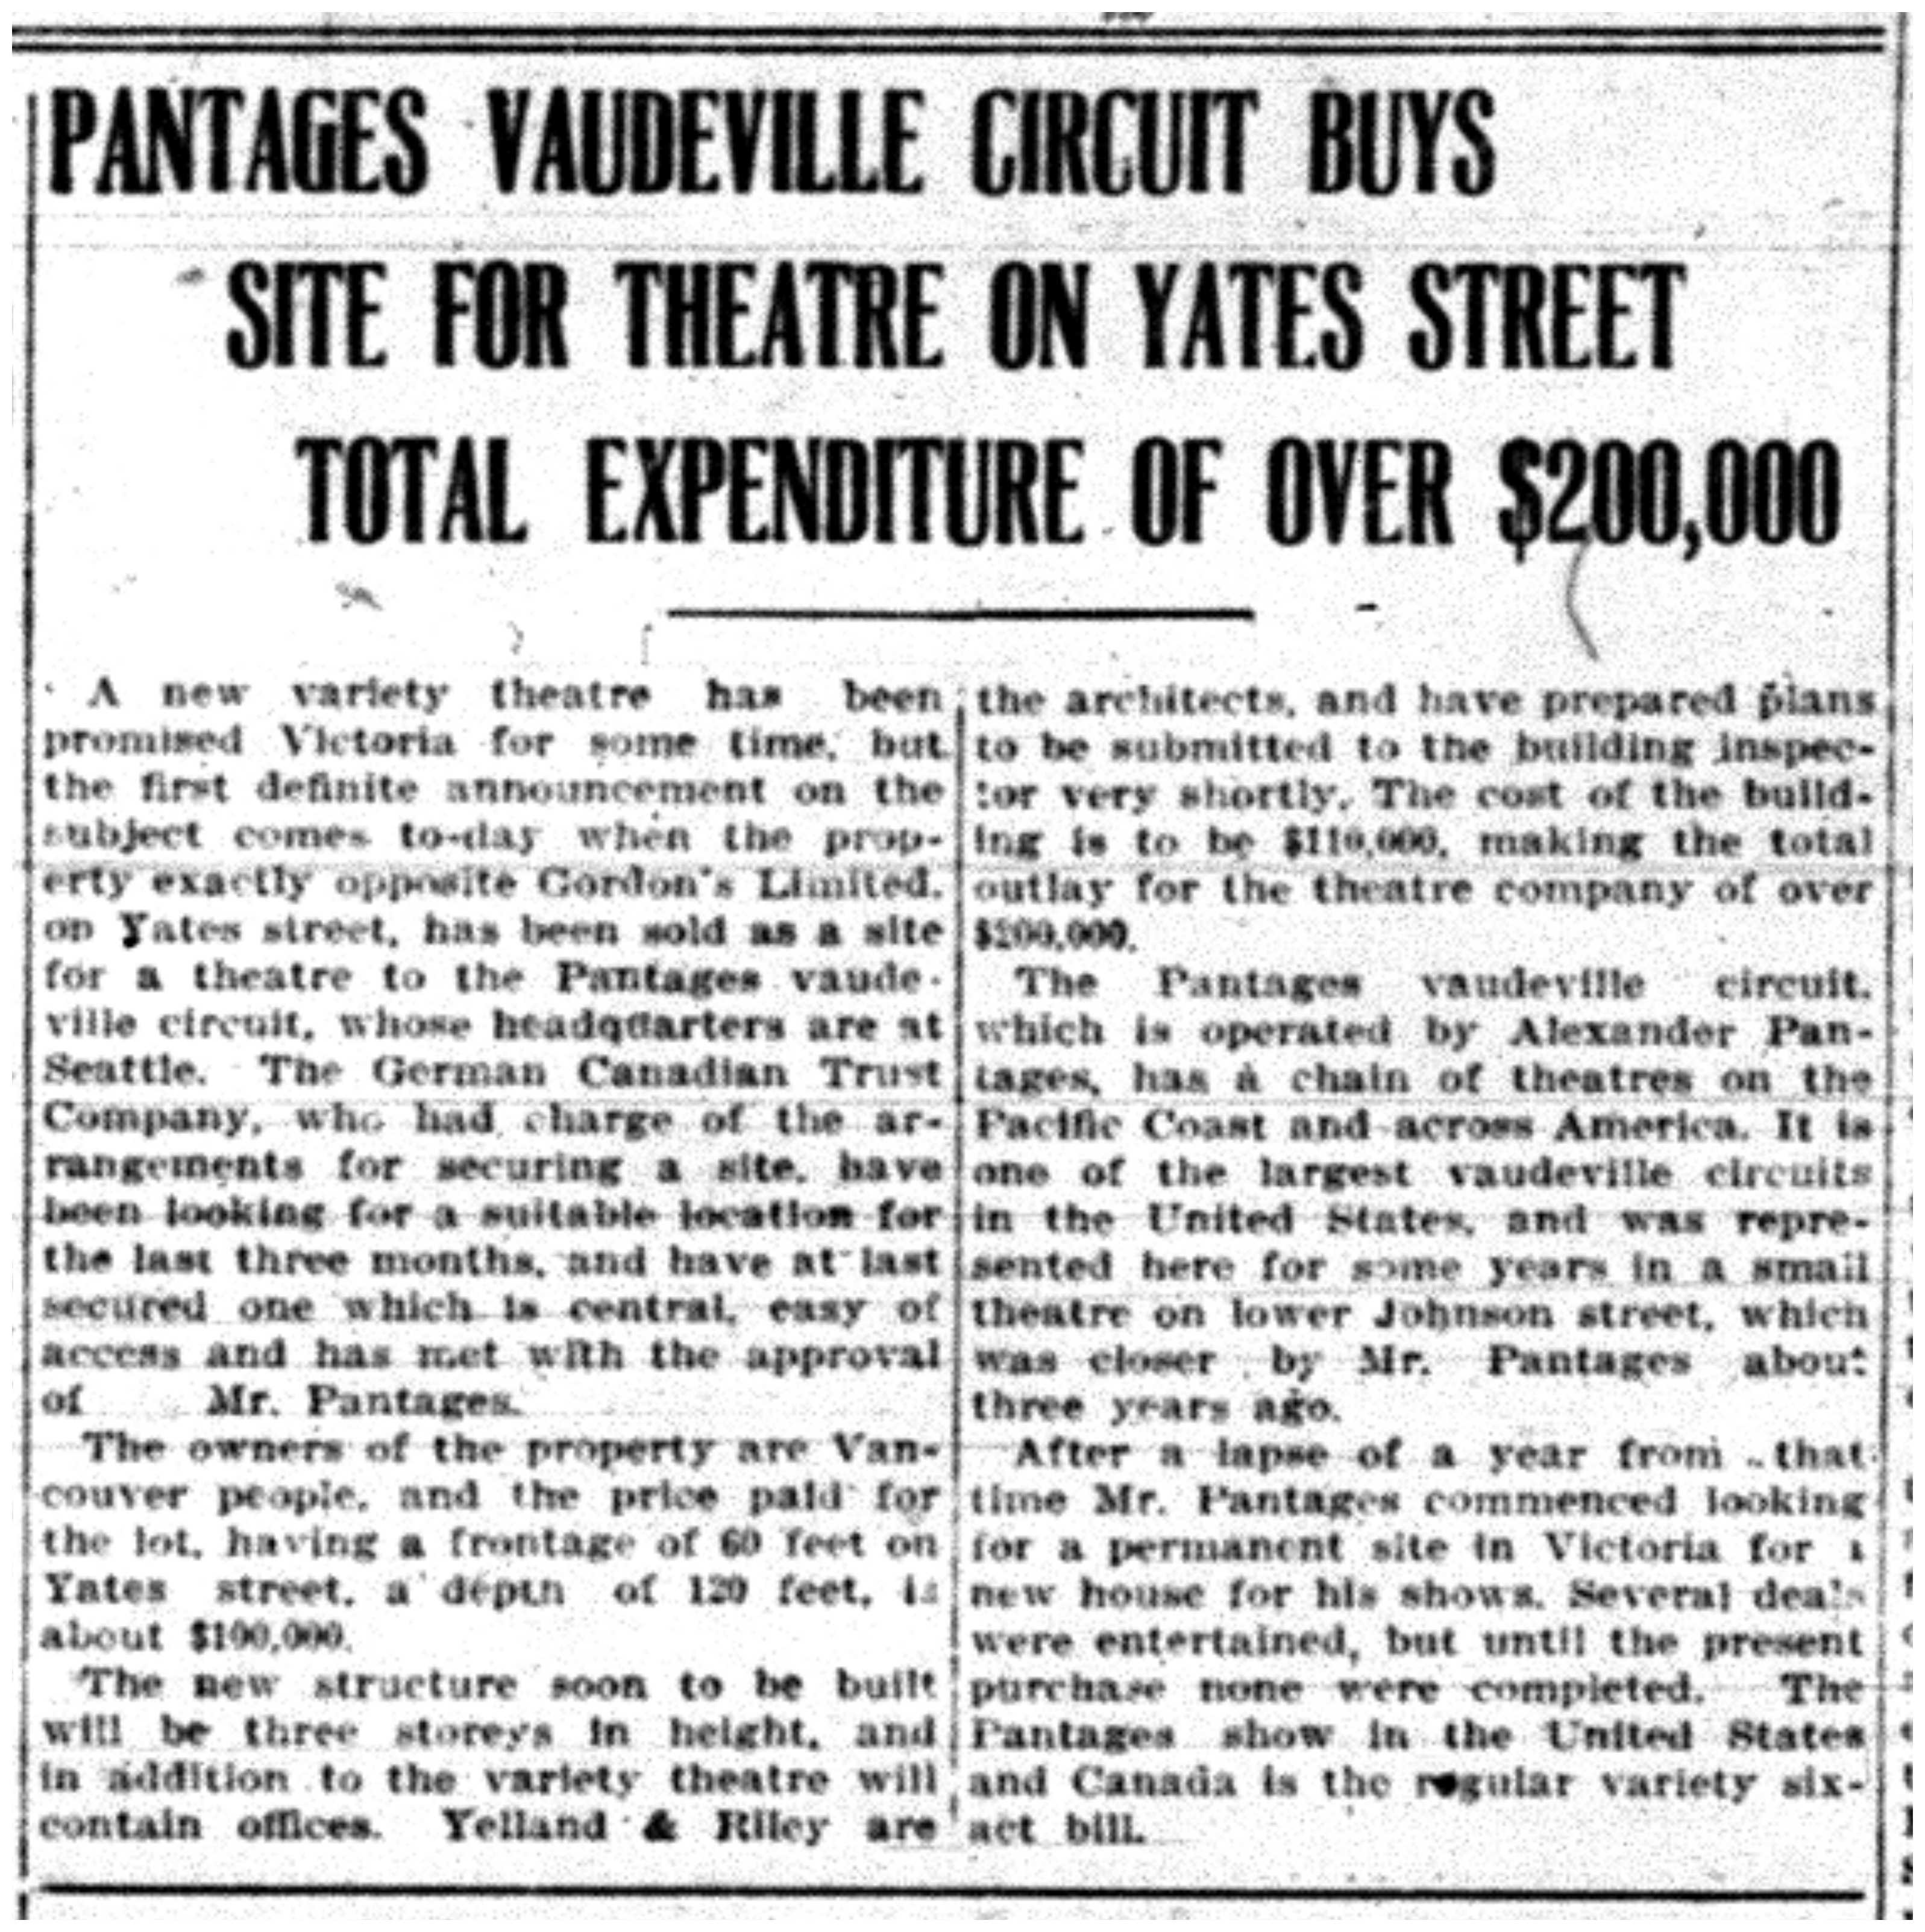 """Pantages Vaudeville Circuit Buys Site for Theatre on Yates Street"""